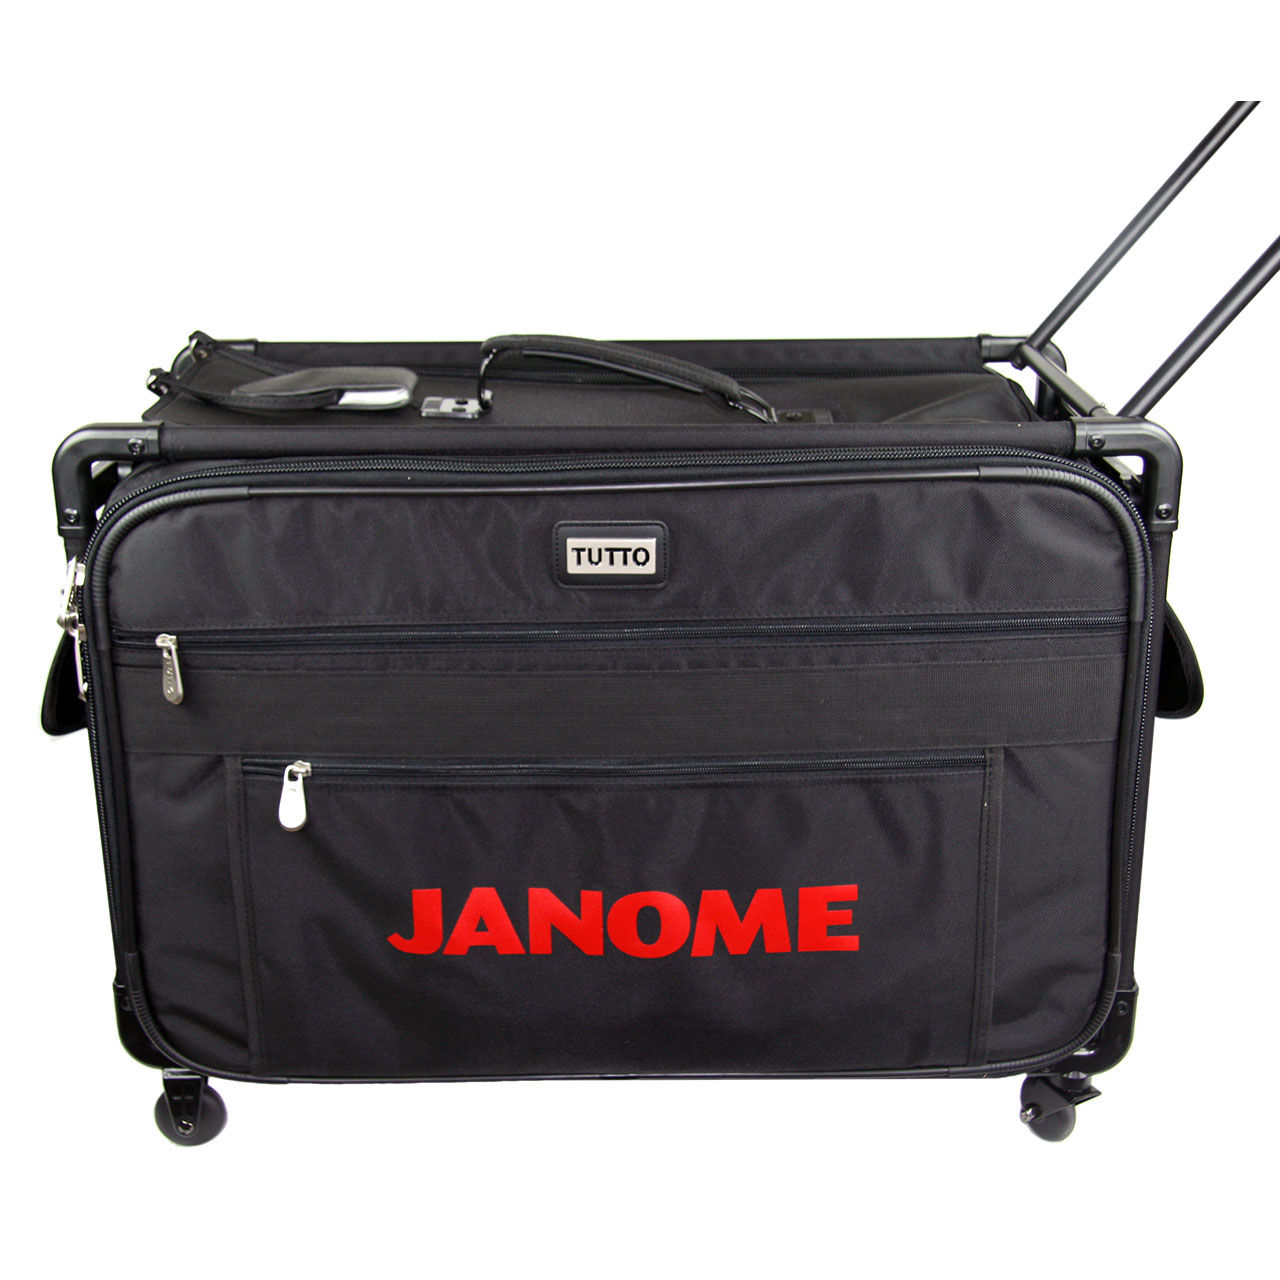 valise roulette trolley small noire janome ets stecker bertrix. Black Bedroom Furniture Sets. Home Design Ideas